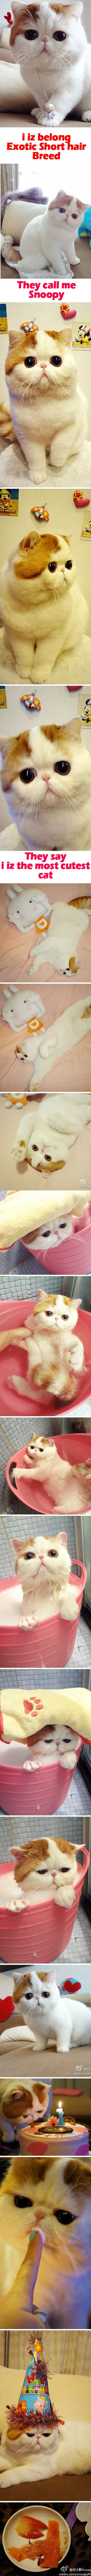 The most cutest cat in the world called Snoopy cat, it is exotic short hair breed, the only of it's kind lives in CHina.. For more details click image